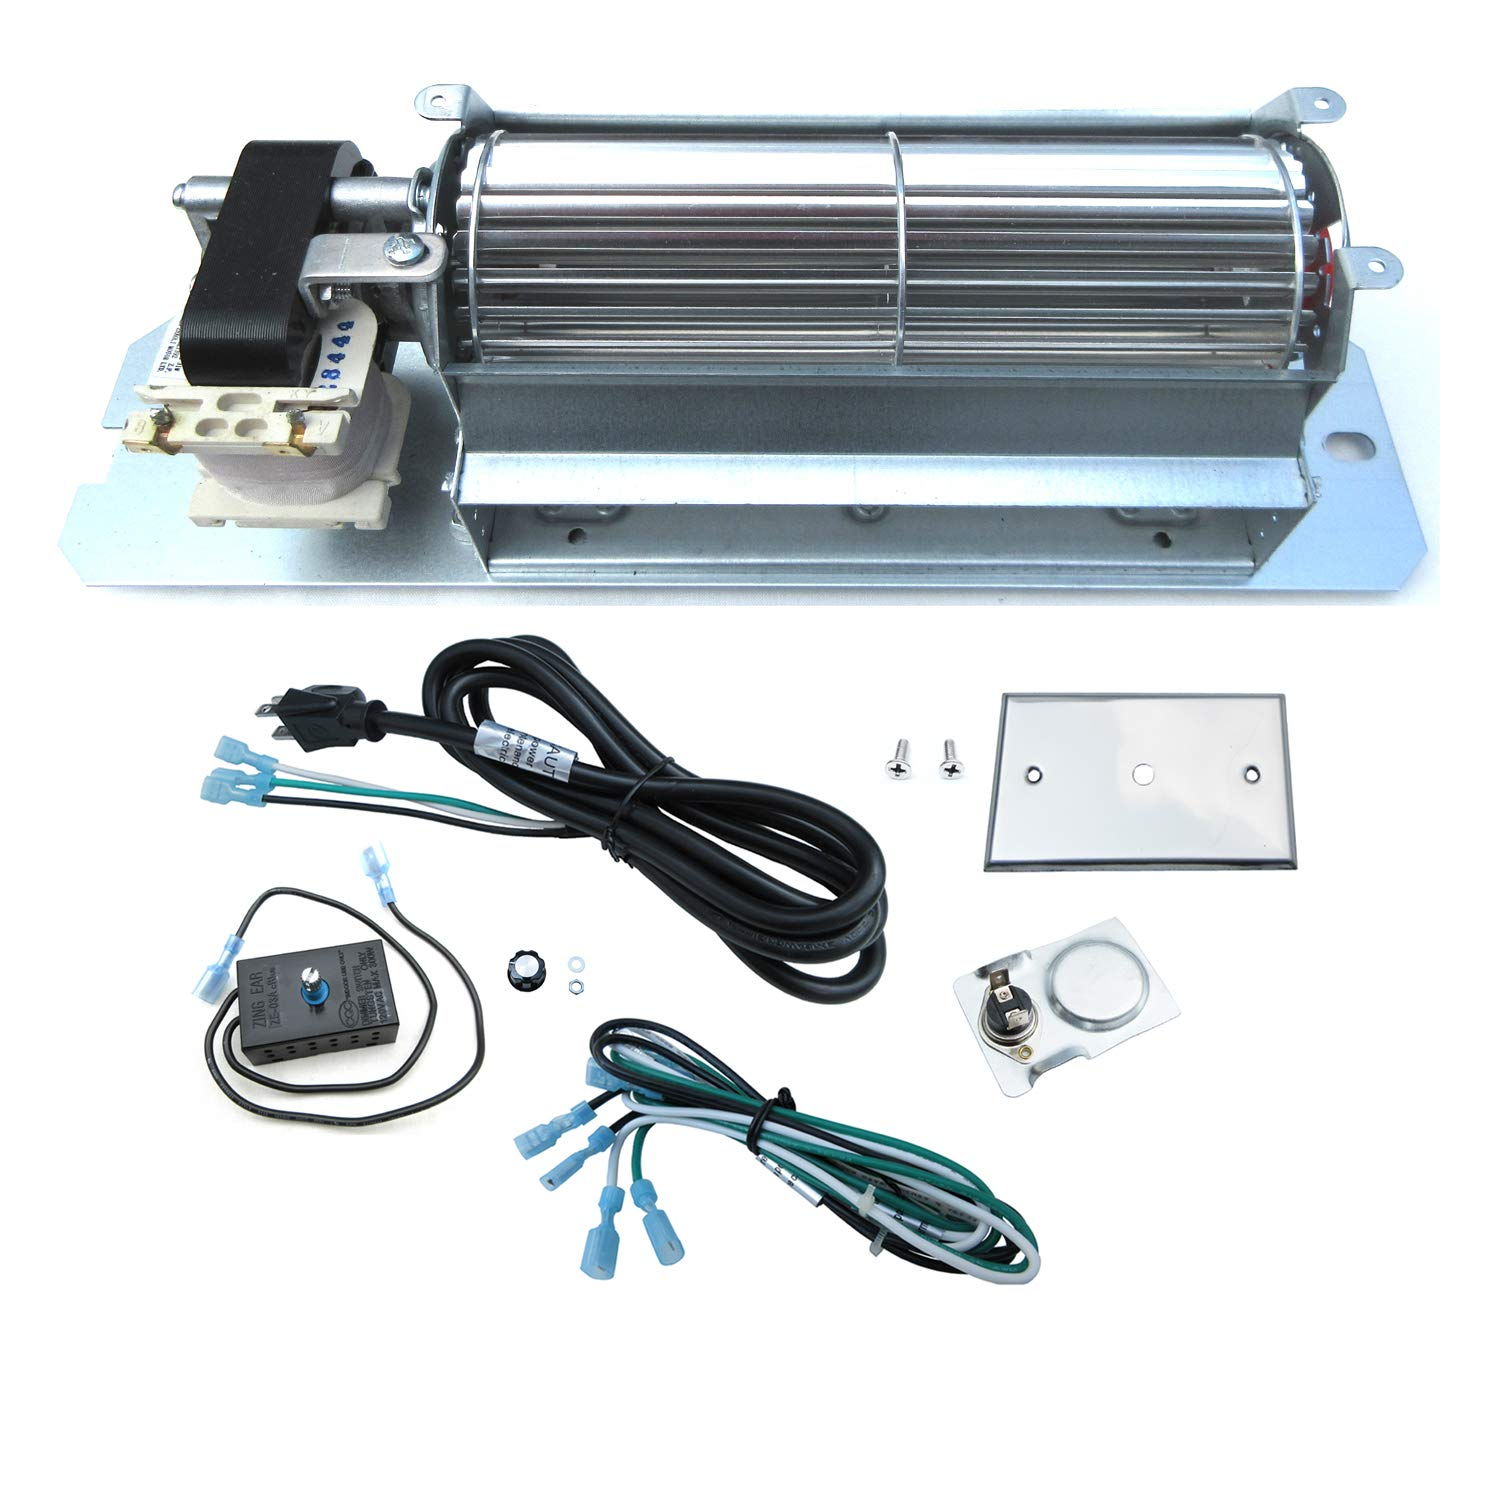 Direct store Parts Kit DN106 Replacement Fireplace Blower Fan Kit GZ550 for Continental Napoleon Rotom by Direct Store